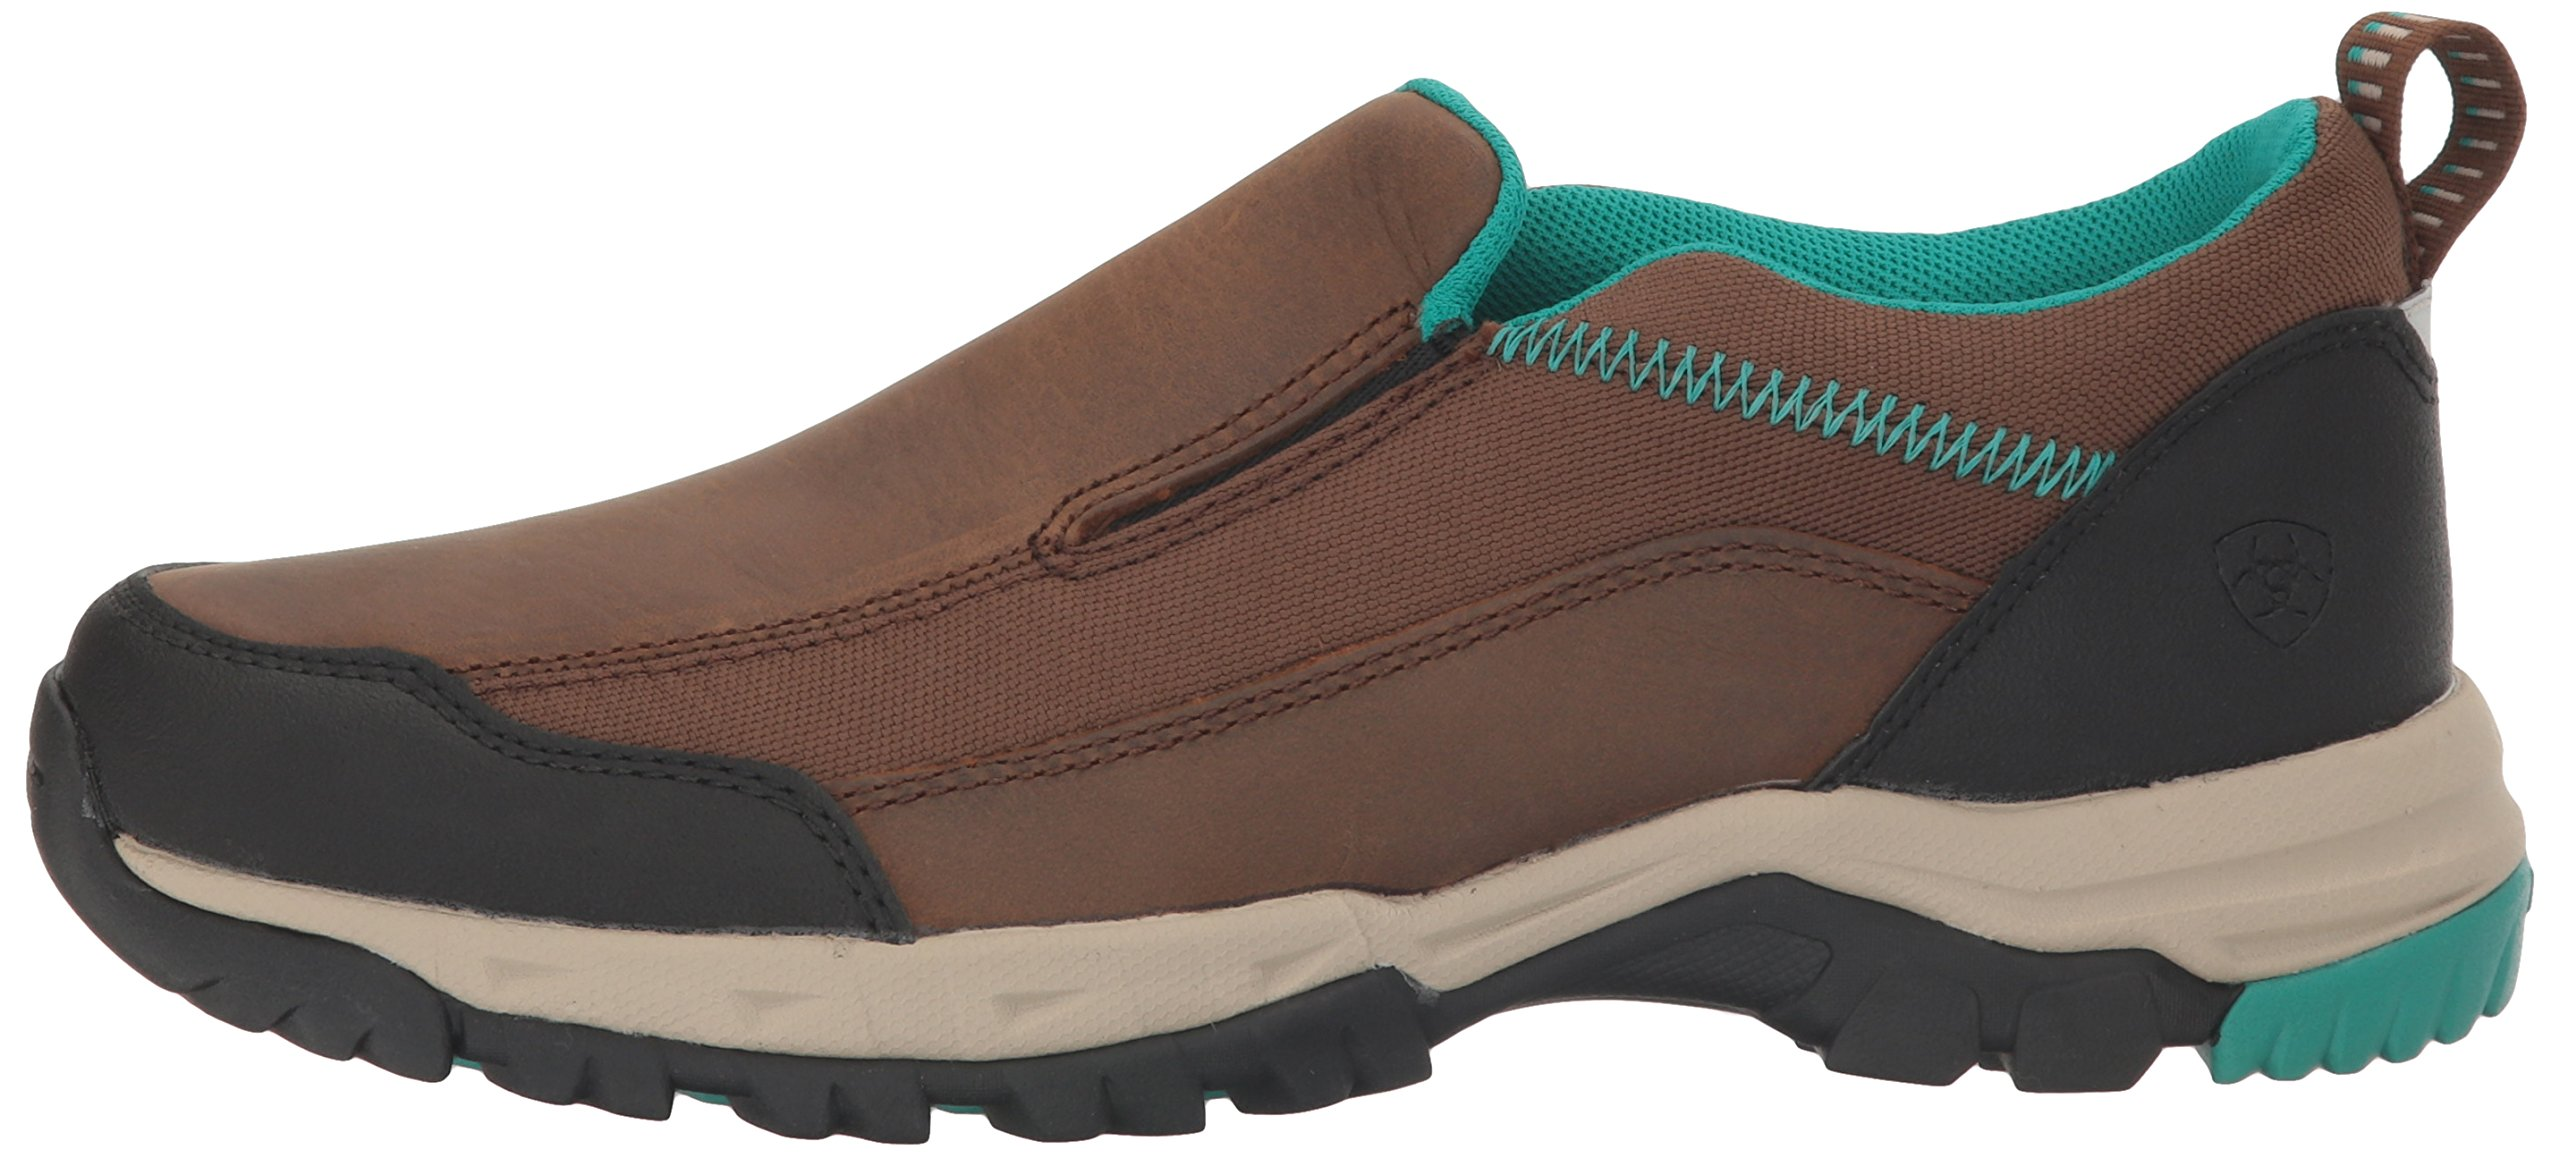 Ariat Women's Skyline Slip-on Hiking Shoe, Taupe, 8 B US by Ariat (Image #5)